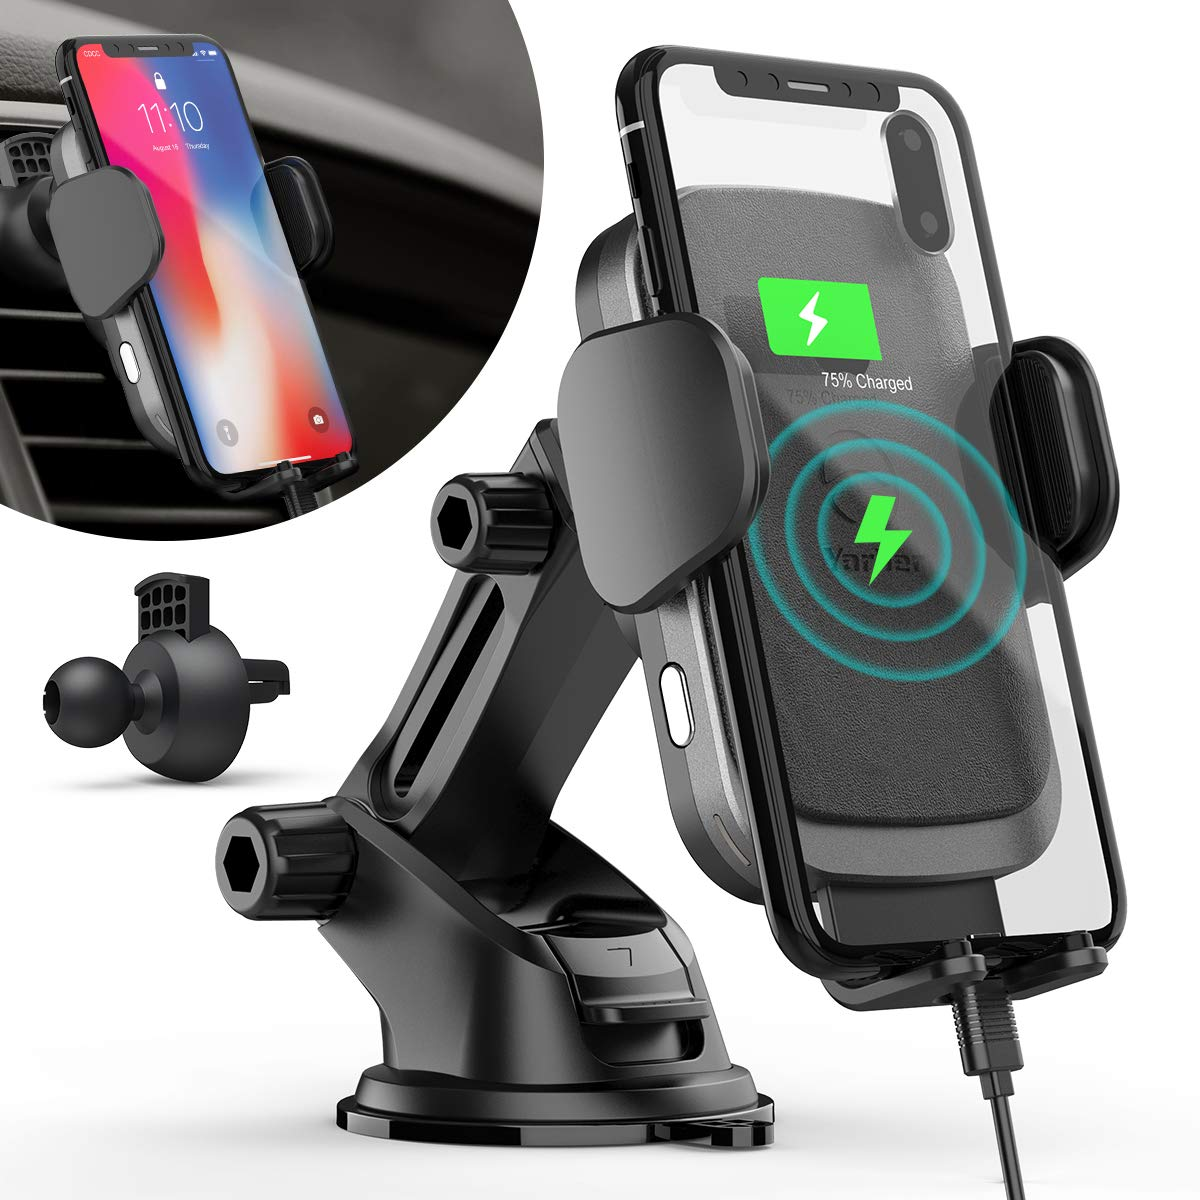 Wireless Car Charger Mount, 10W Fast Wireless Charger Touch Sensitive Qi Car Phone Holder, Phone Holder for Car Windscreen Air Vent for iPhone Xs Max/XR/X/8/8 Plus/Samsung S10/9/8